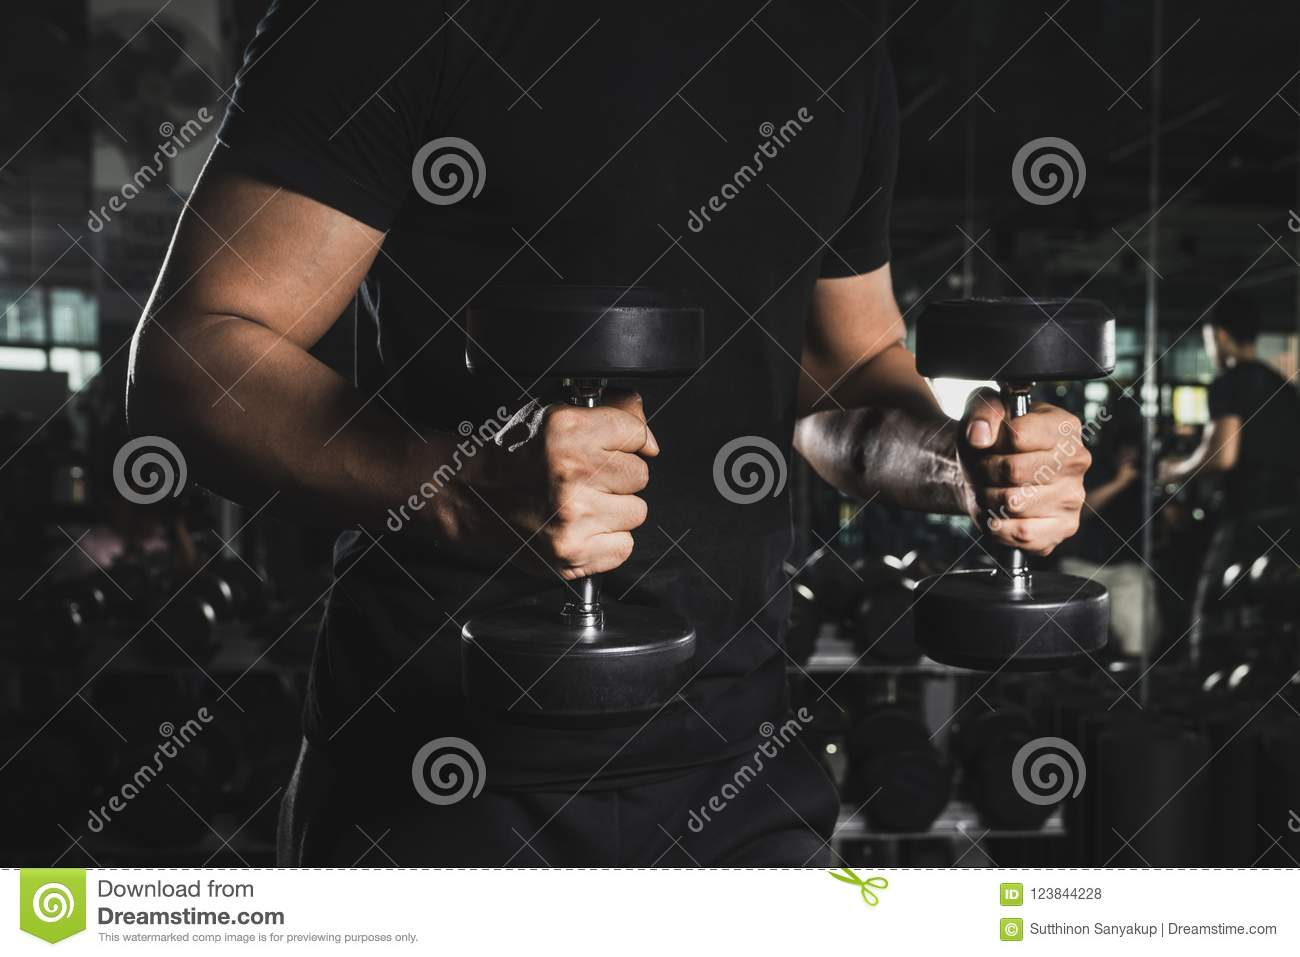 Close Up of a muscular young man lifting weights in gym on dark background.